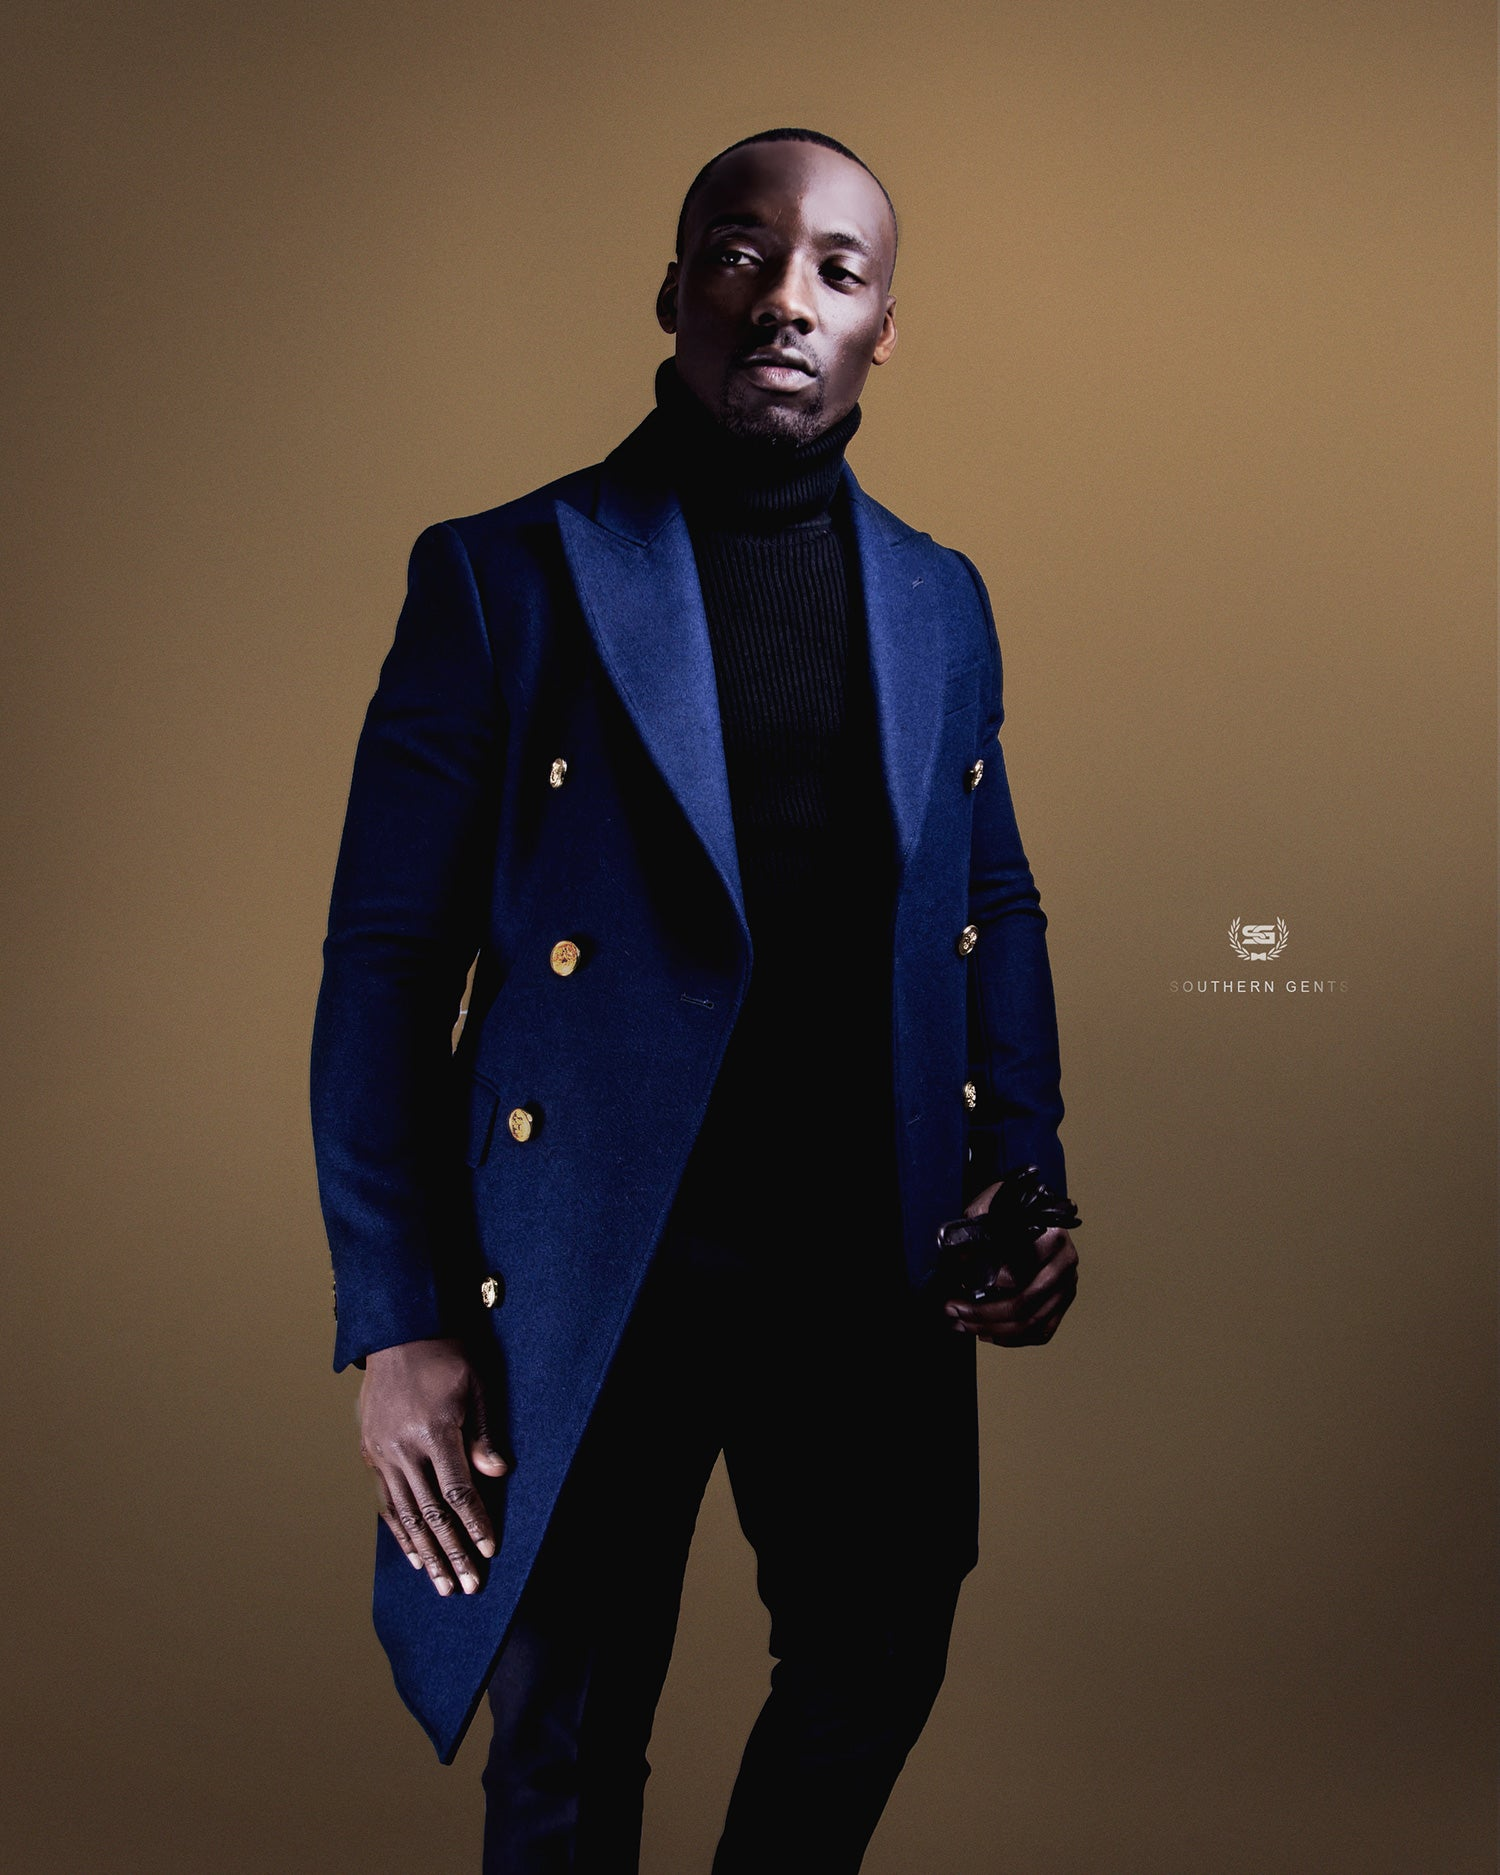 Southern Gents Double Breasted Coat - Navy + Gold